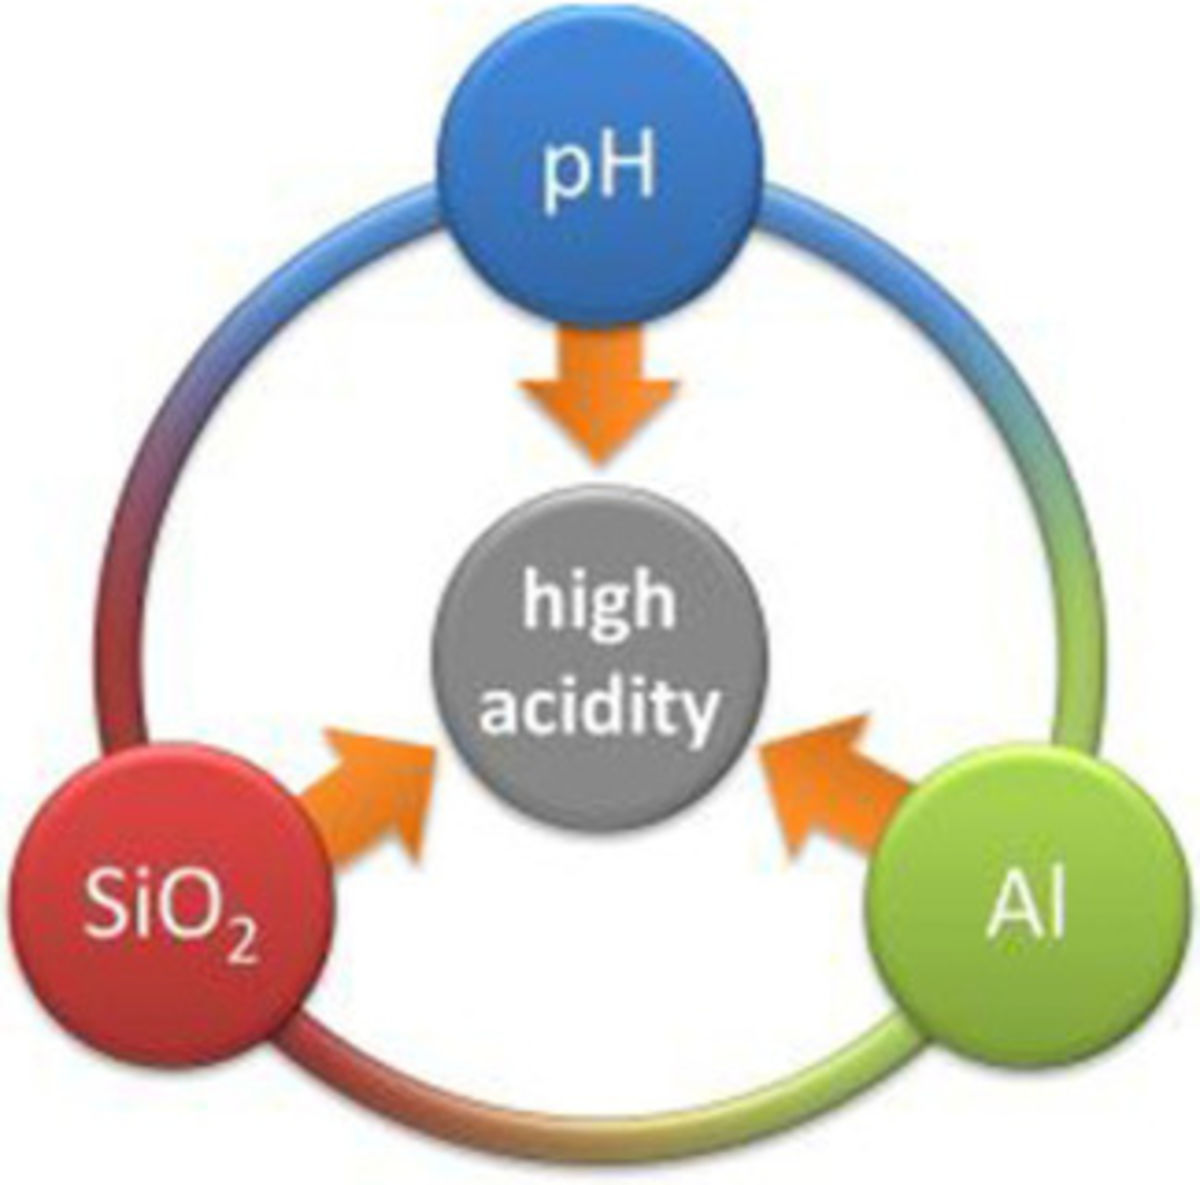 Synthetic and Catalytic Potential of Amorphous Mesoporous Aluminosilicates Prepared by Postsynthetic Aluminations of Silica in Aqueous Media